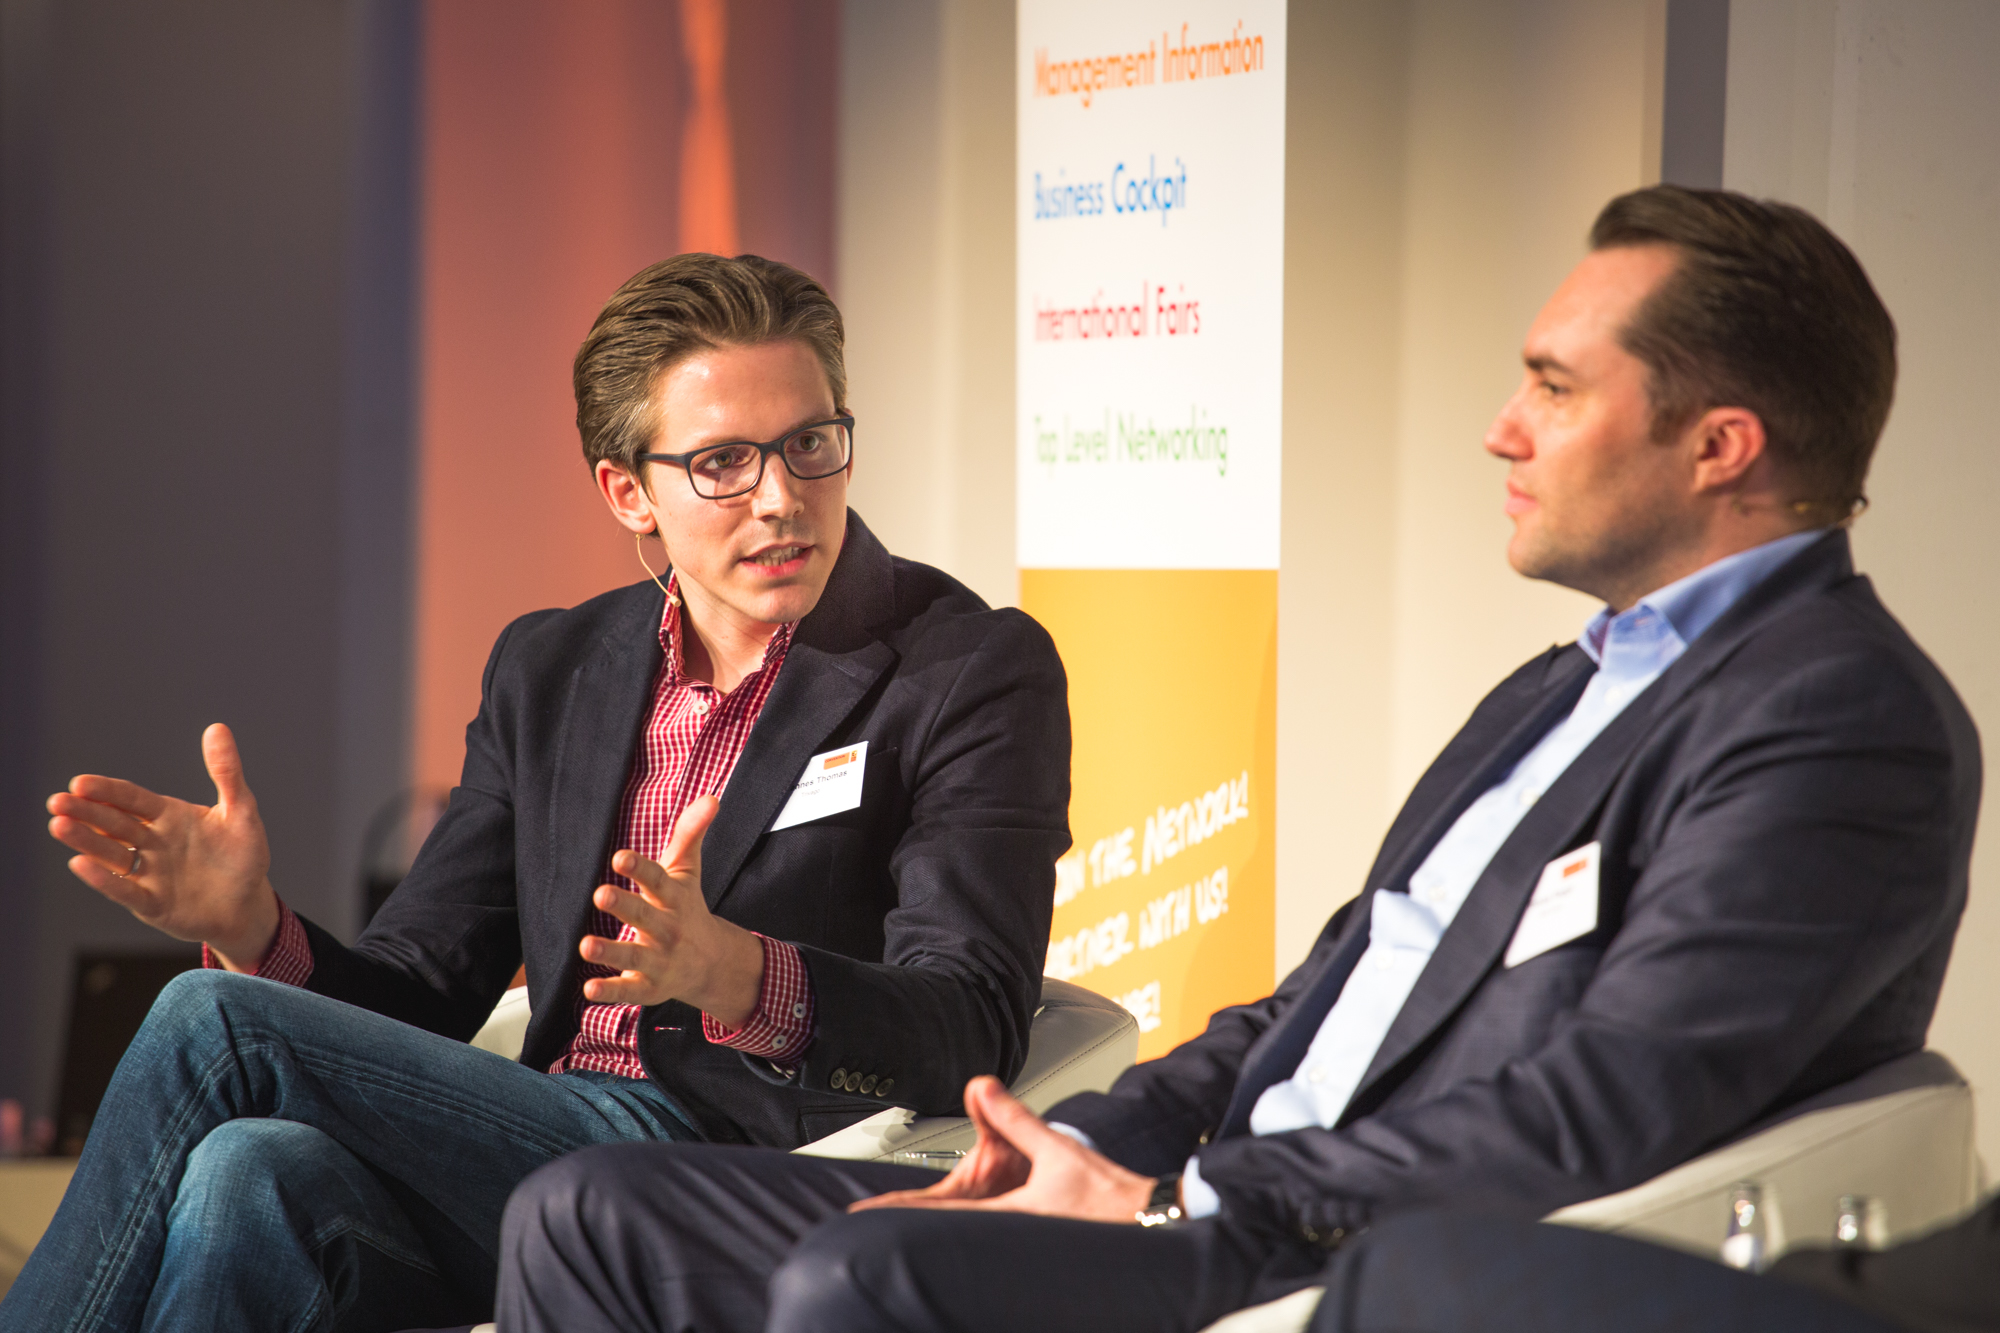 Johannes Thomas sits next to Tobias Ragge while speaking to the benefits of metasearch at ITB Berlin